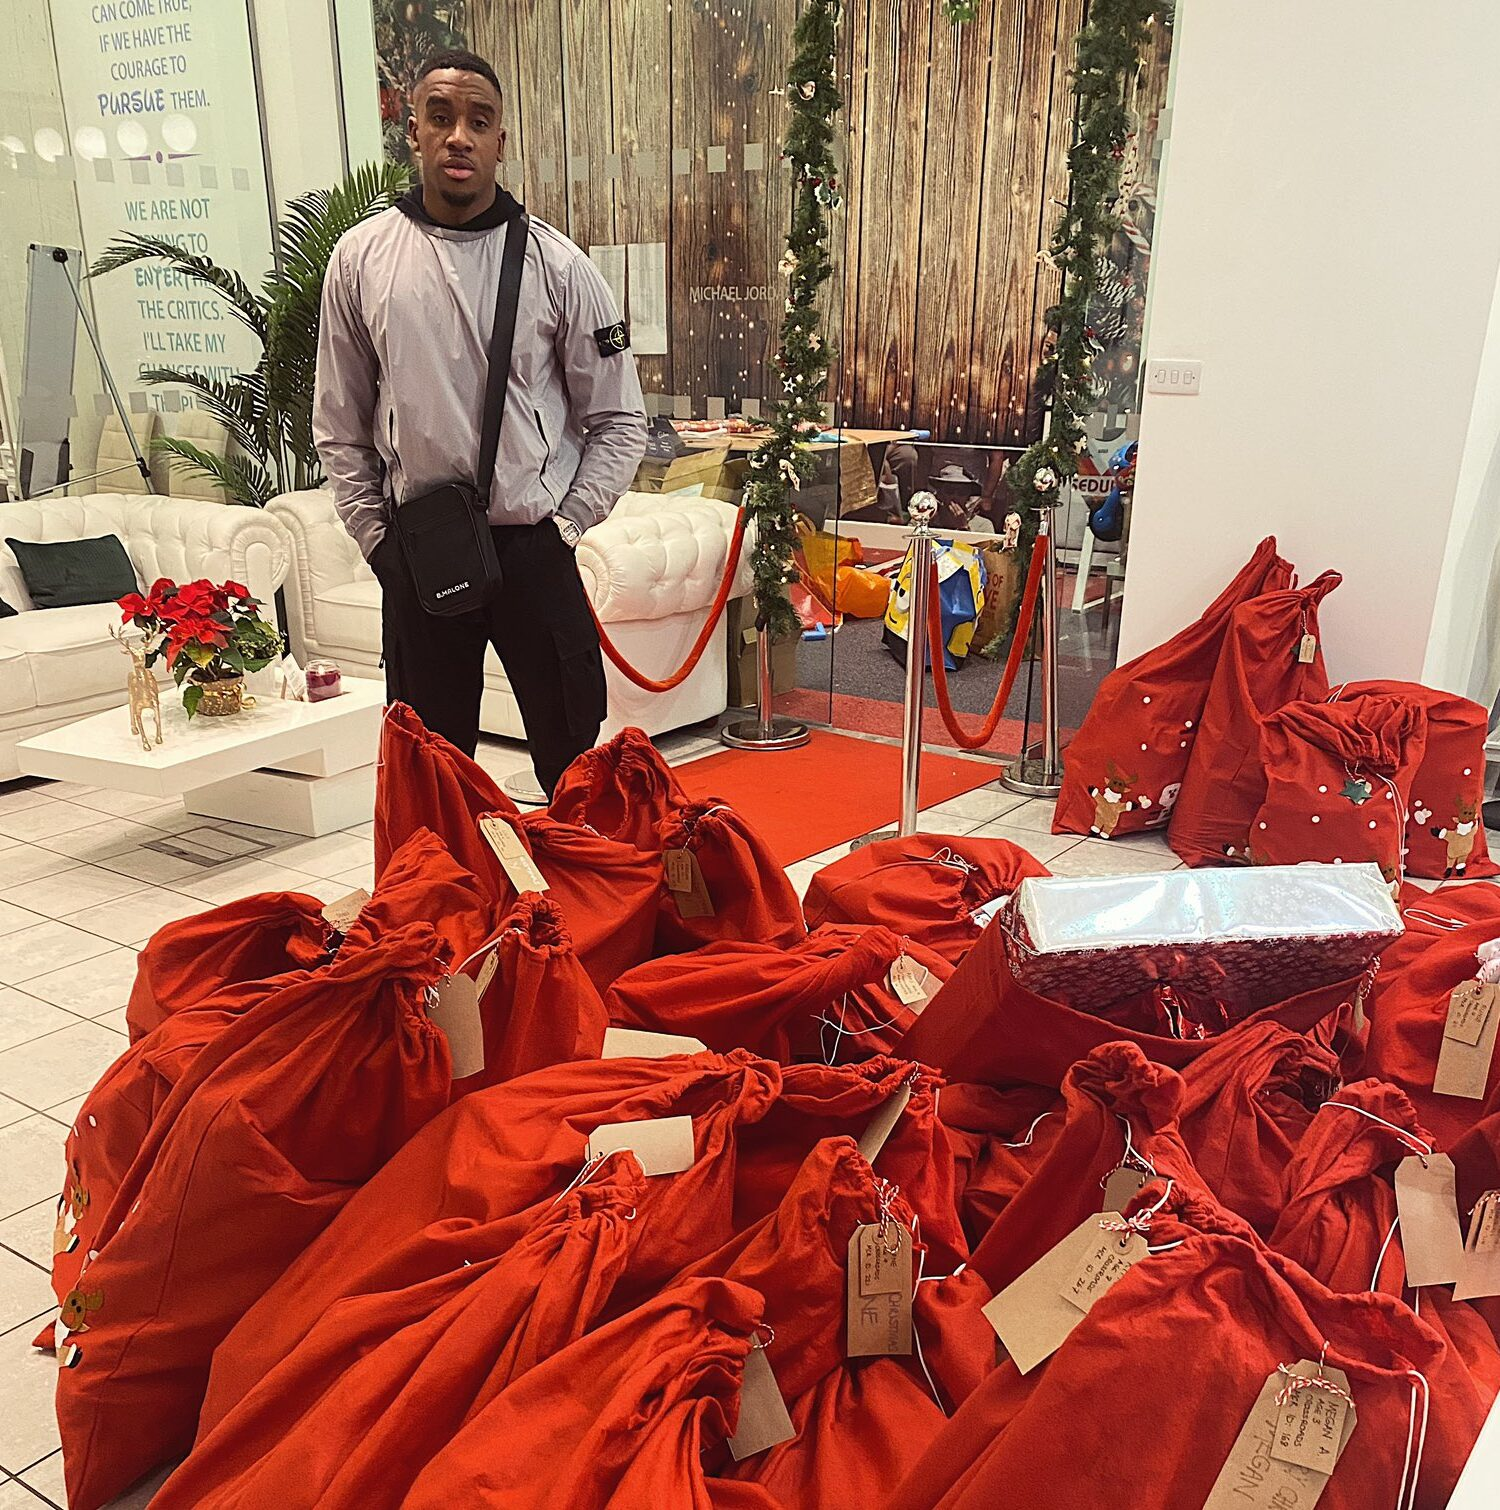 Manchester rapper Bugzy Malone donates sacks full of Christmas presents to 'underprivileged children', The Manc